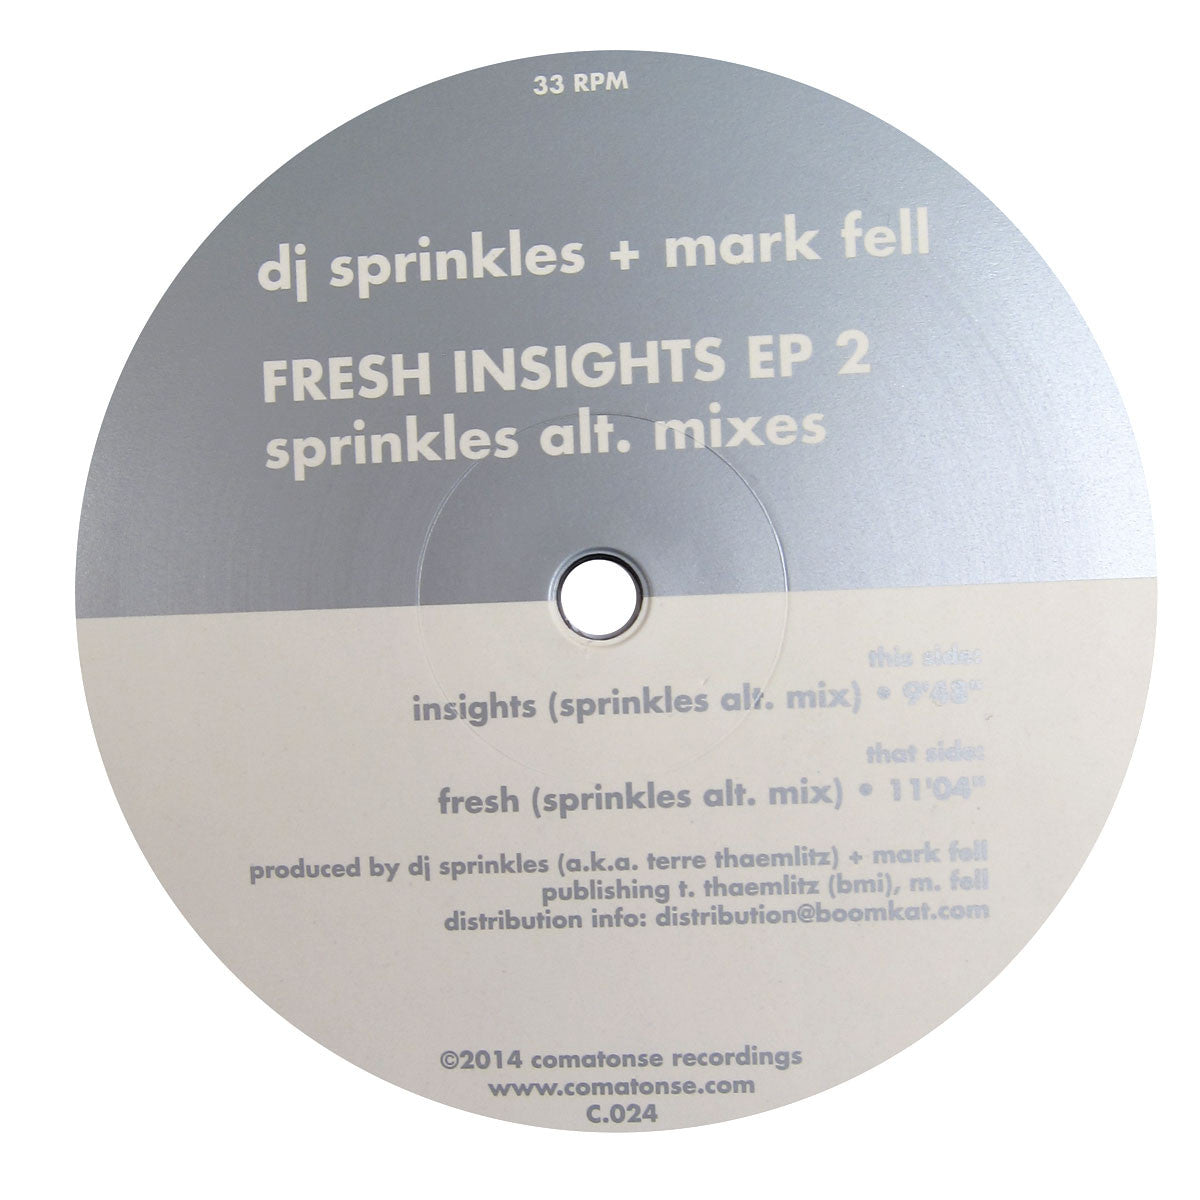 DJ Sprinkles + Mark Fell: Fresh Insights EP 2 (Sprinkles Alt. Mixes) Vinyl 12""